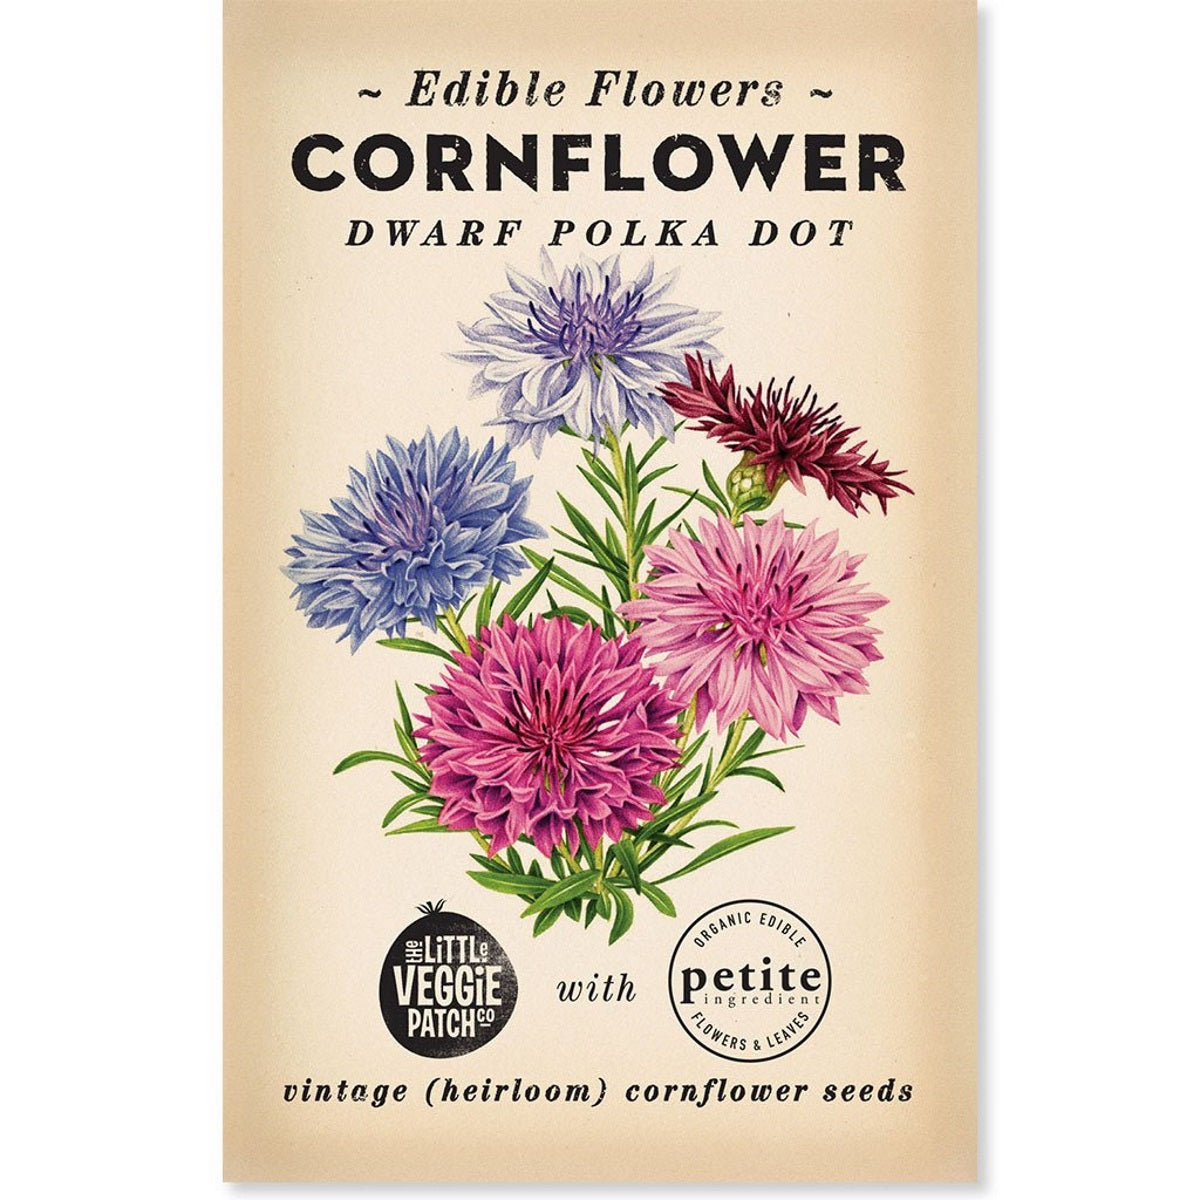 Cornflower (Dwarf Polkadot) Heirloom Seeds - Seeds - Throw Some Seeds - Australian gardening gifts and eco products online!